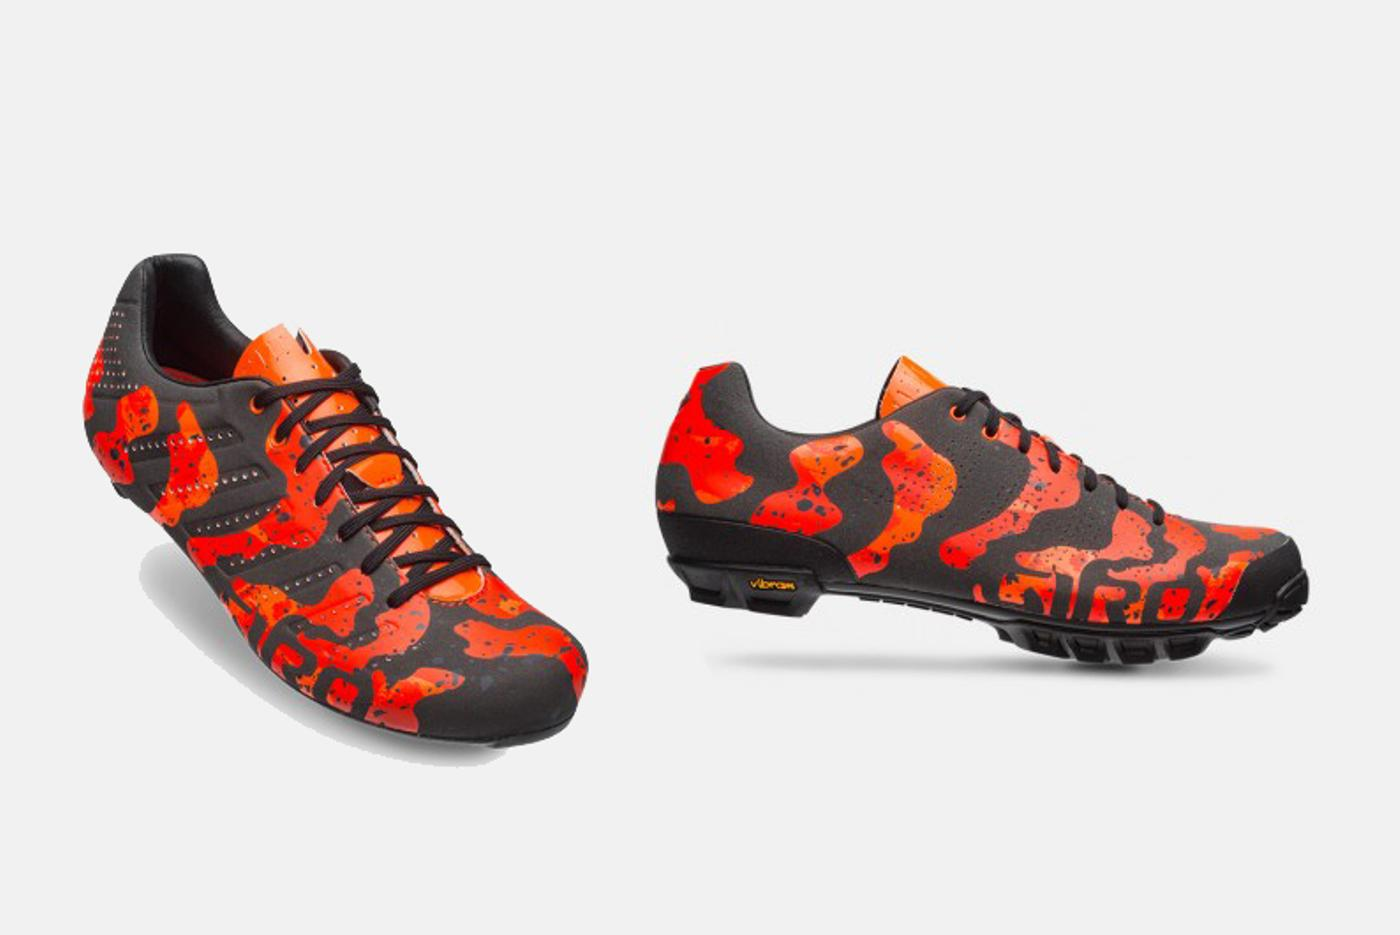 Giro's Limited Edition Lava Shoes